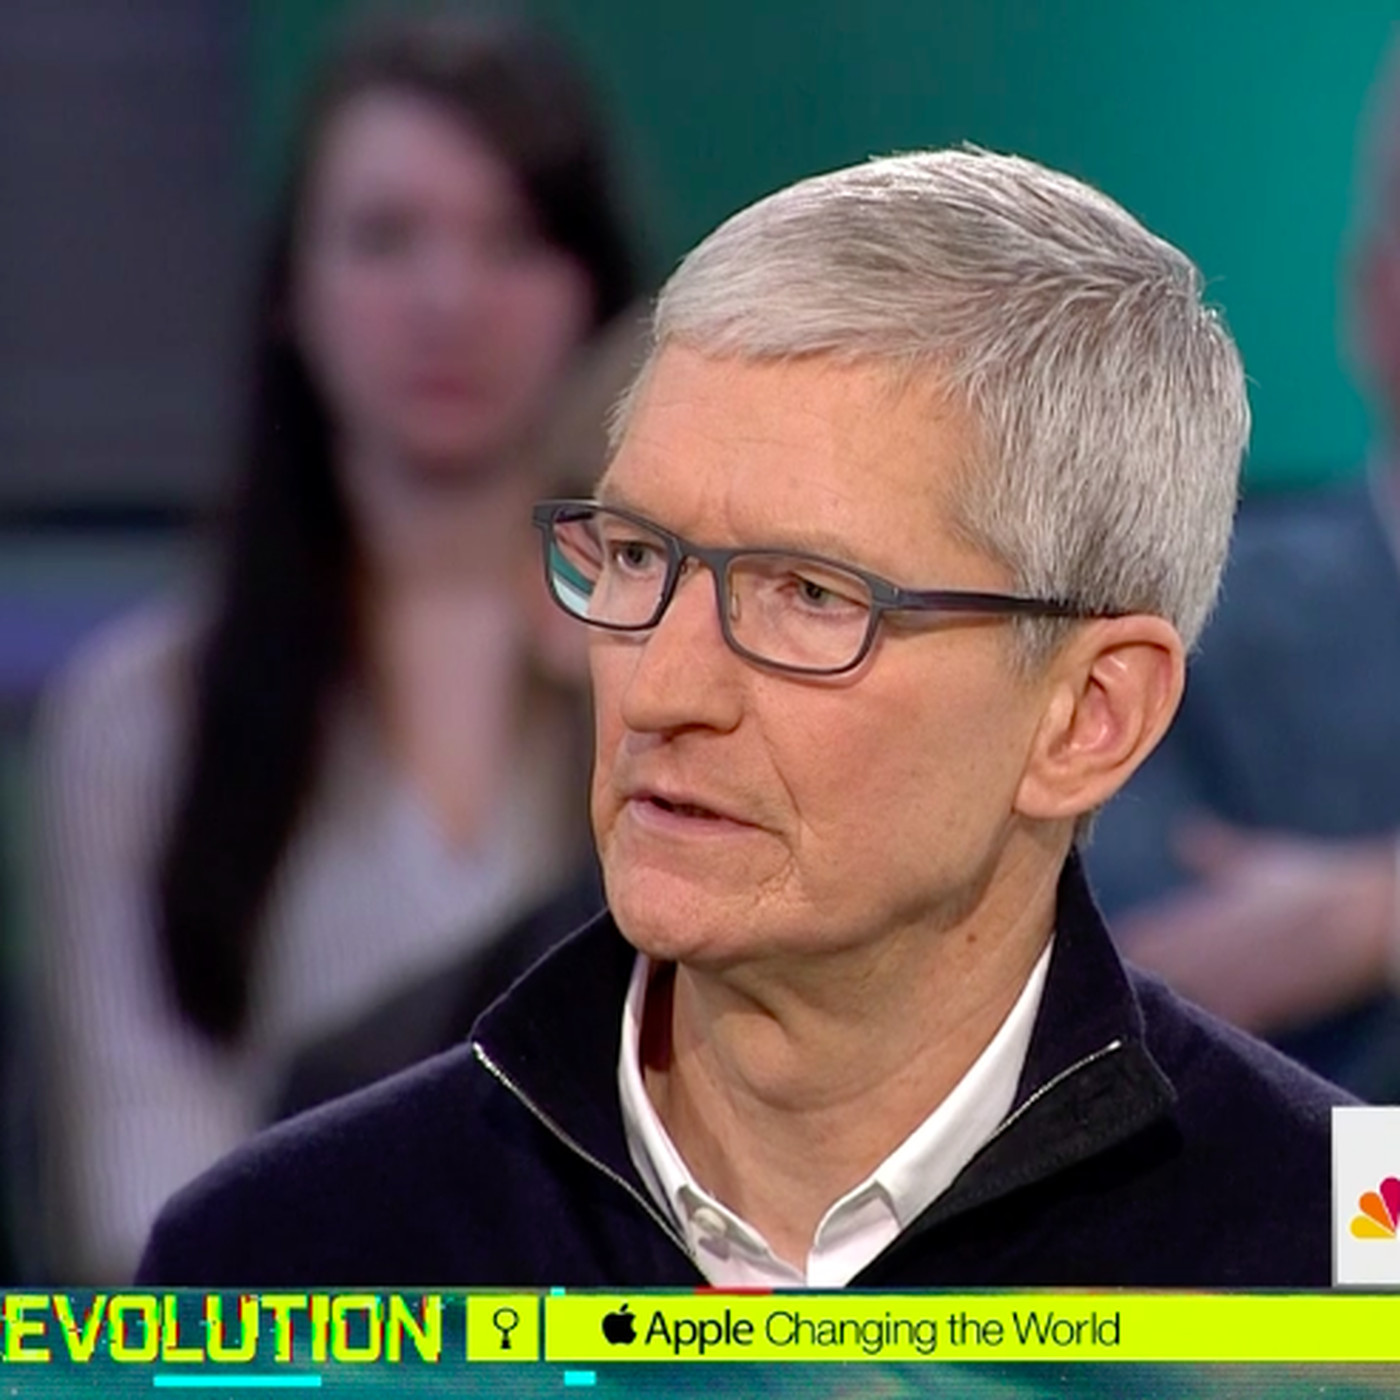 Apple CEO Tim Cook, Recode's Kara Swisher and MSNBC's Chris